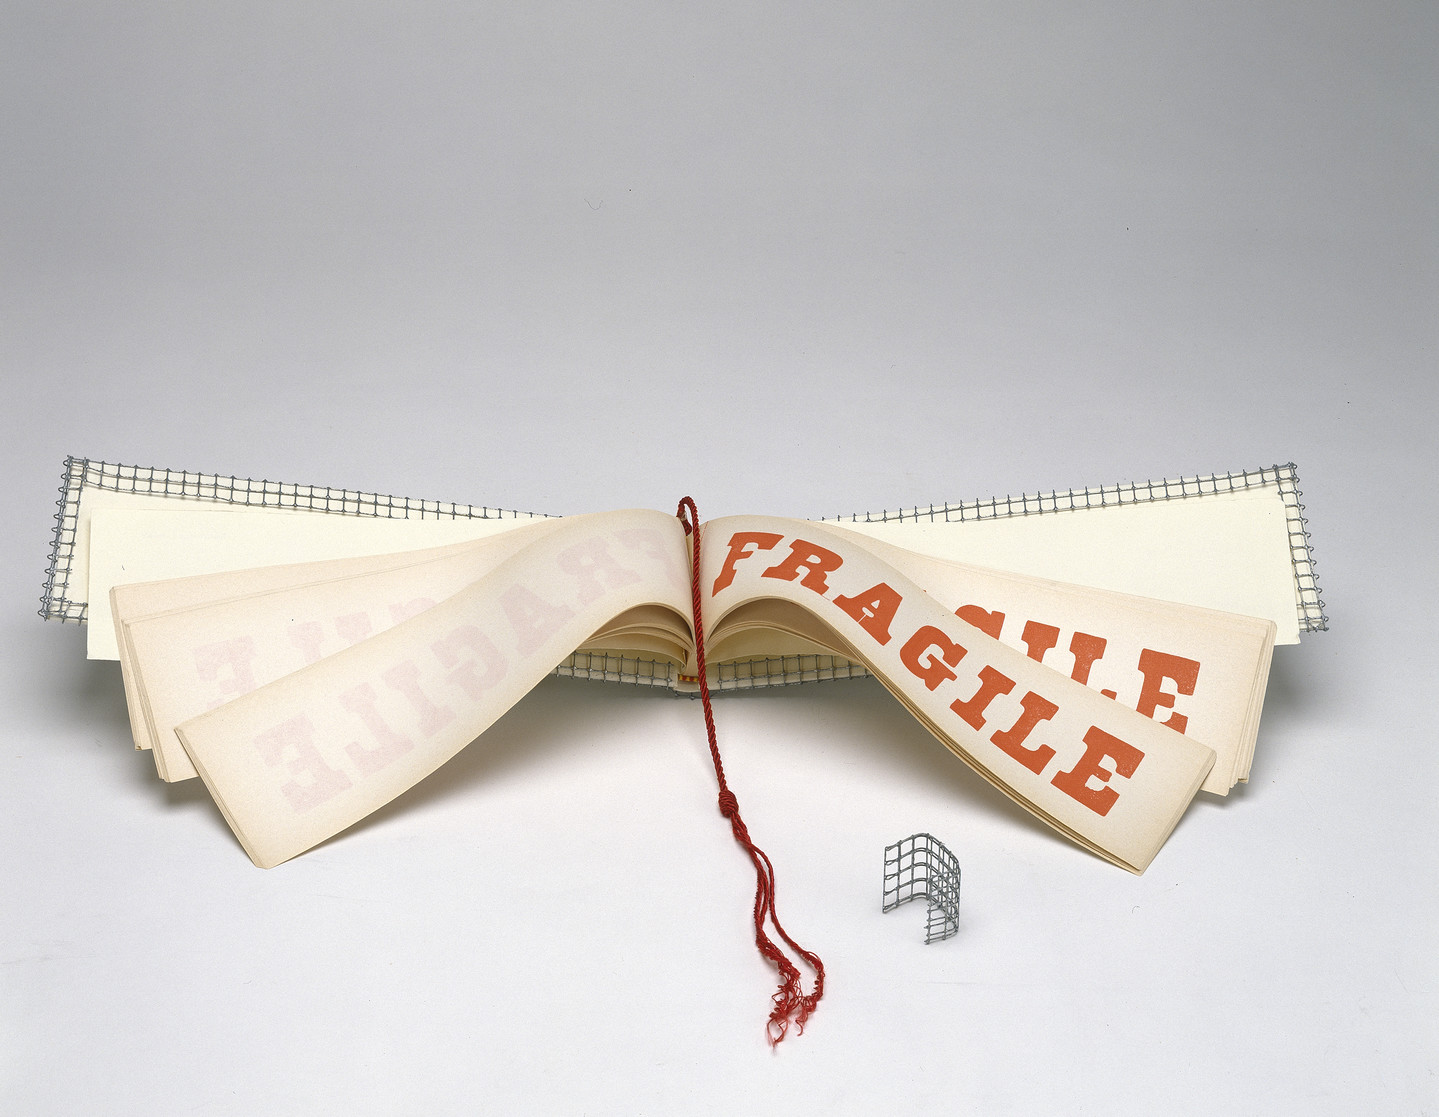 A wide and narrow book opened to display pages with the word FRAGILE in red block letters. A red tassle hangs down the center of the book and the cover is wrapped with wire mesh.